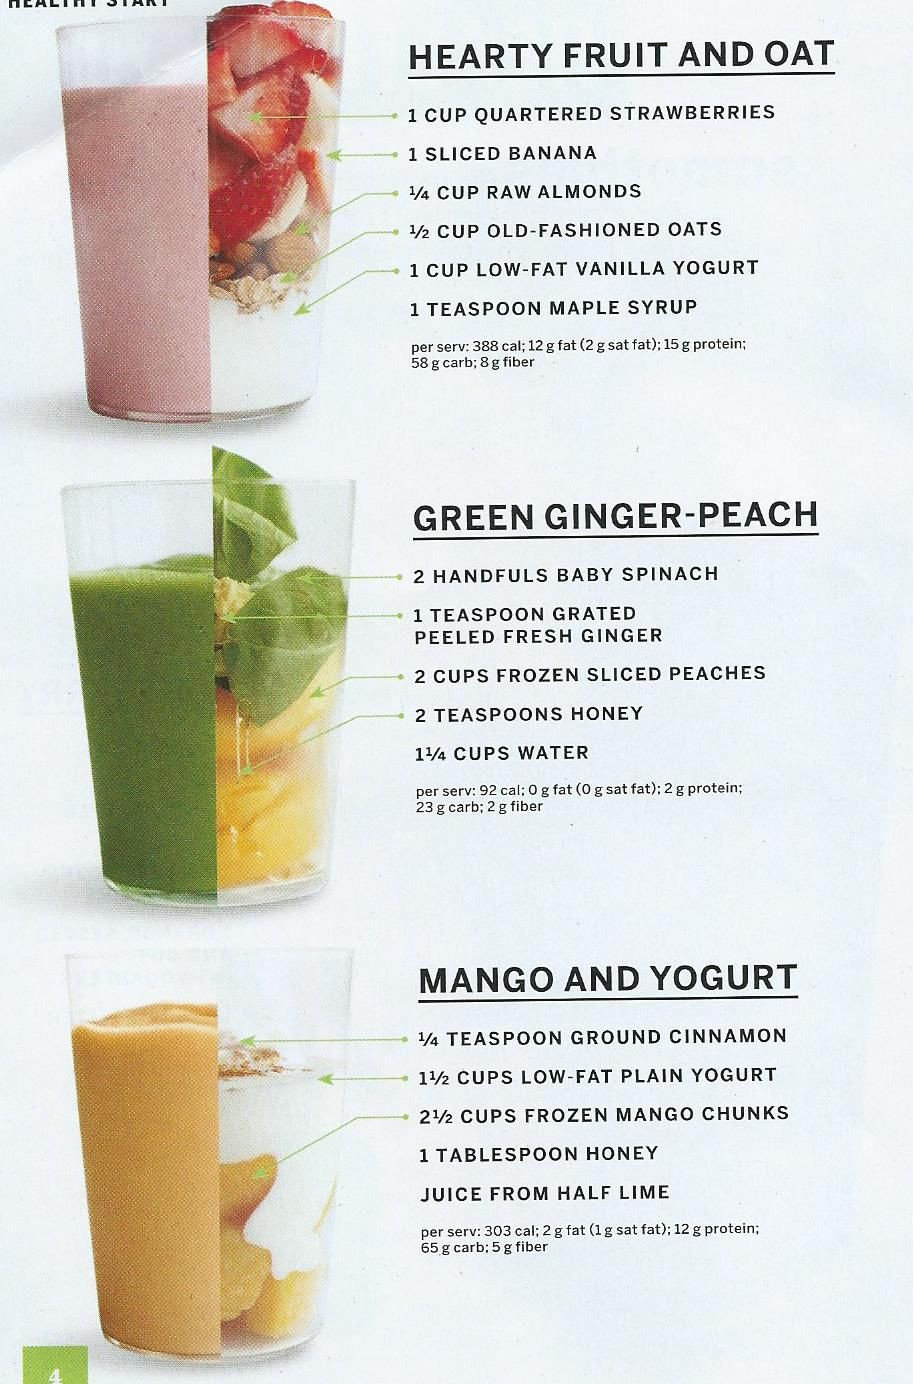 Easy And Healthy Smoothie Recipes  FREE 12 Day Green Smoothie E Course